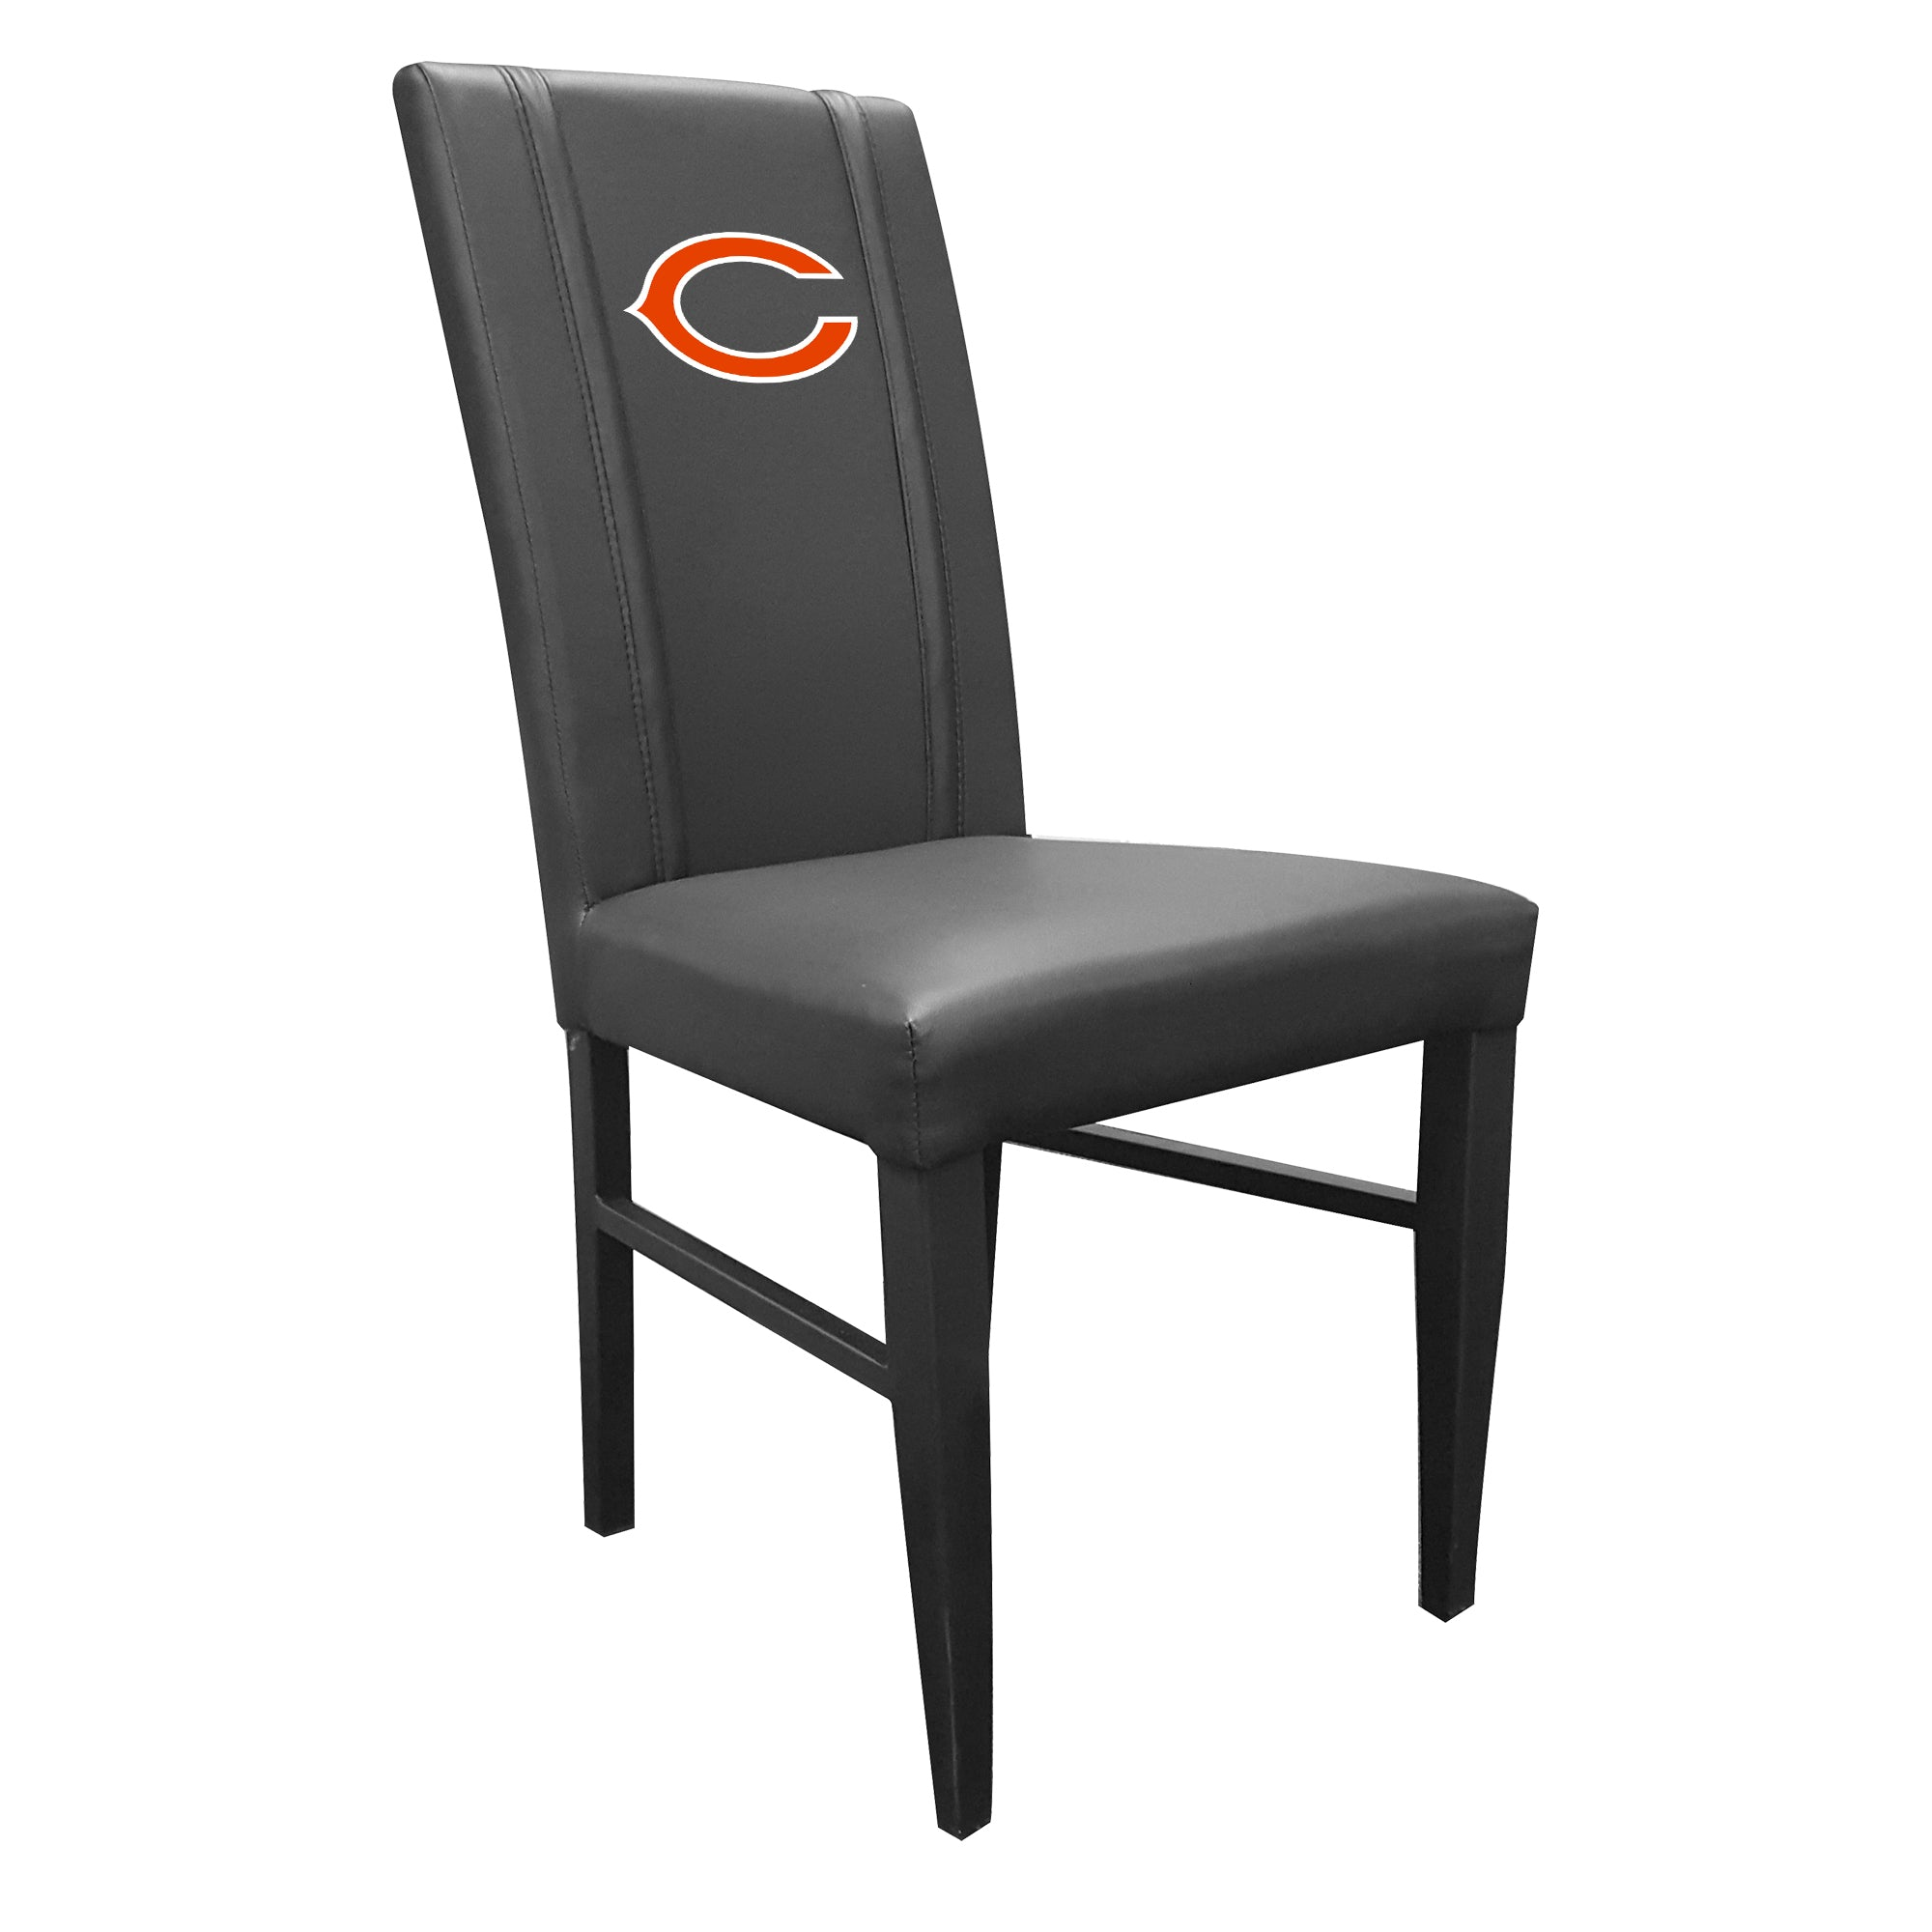 Side Chair 2000 with  Chicago Bears Primary Logo